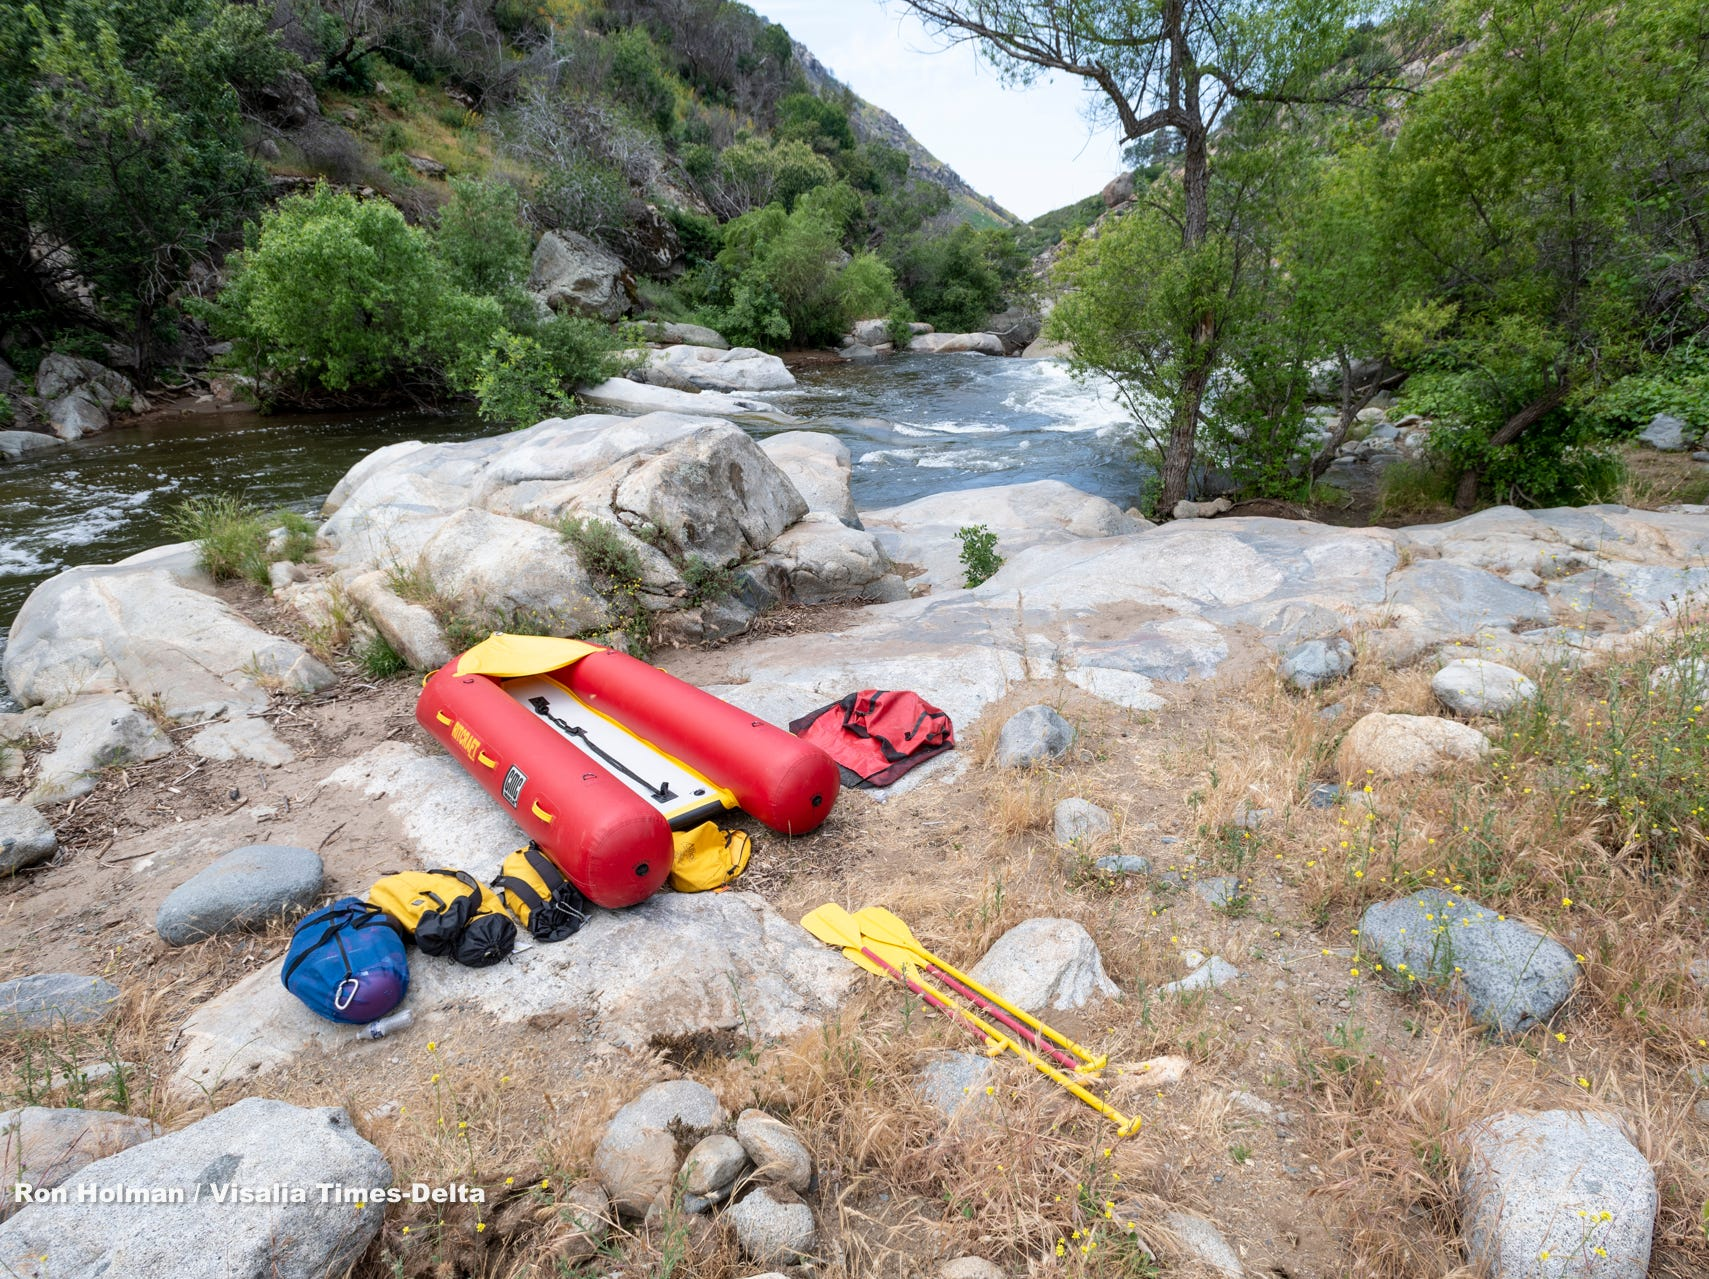 """Tulare County Sheriff Department Search and Rescue continue to search along the Middle Fork of the Tule River about one mile down from the """"Stairs"""" on Monday, May 13, 2019. A 16-year-old boy was last seen after he fell into the water at the Stairs about 6 p.m. Sunday."""